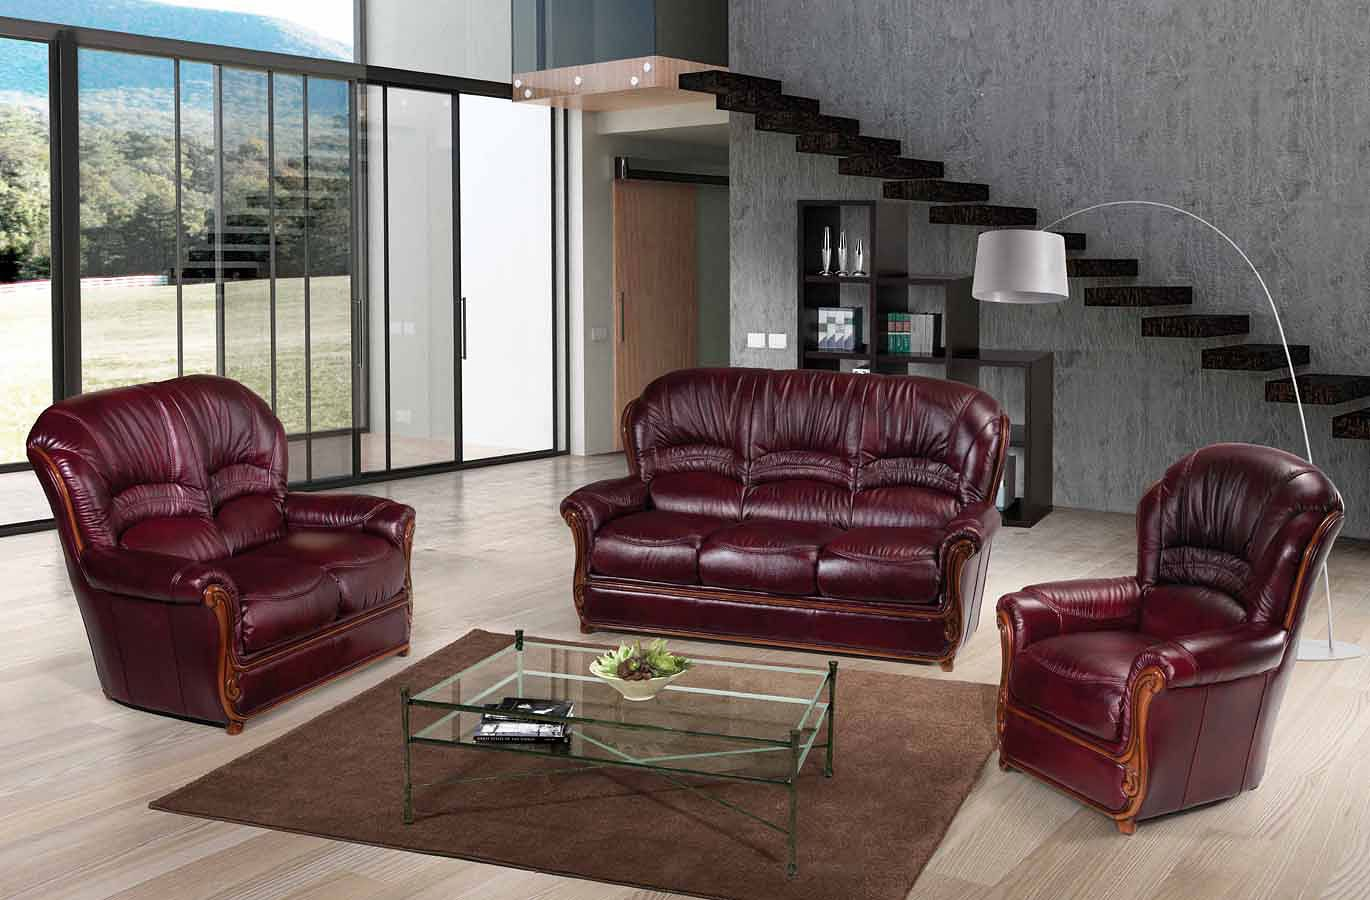 Sara Italian Leather Living Room Set by ESF Furniture ...